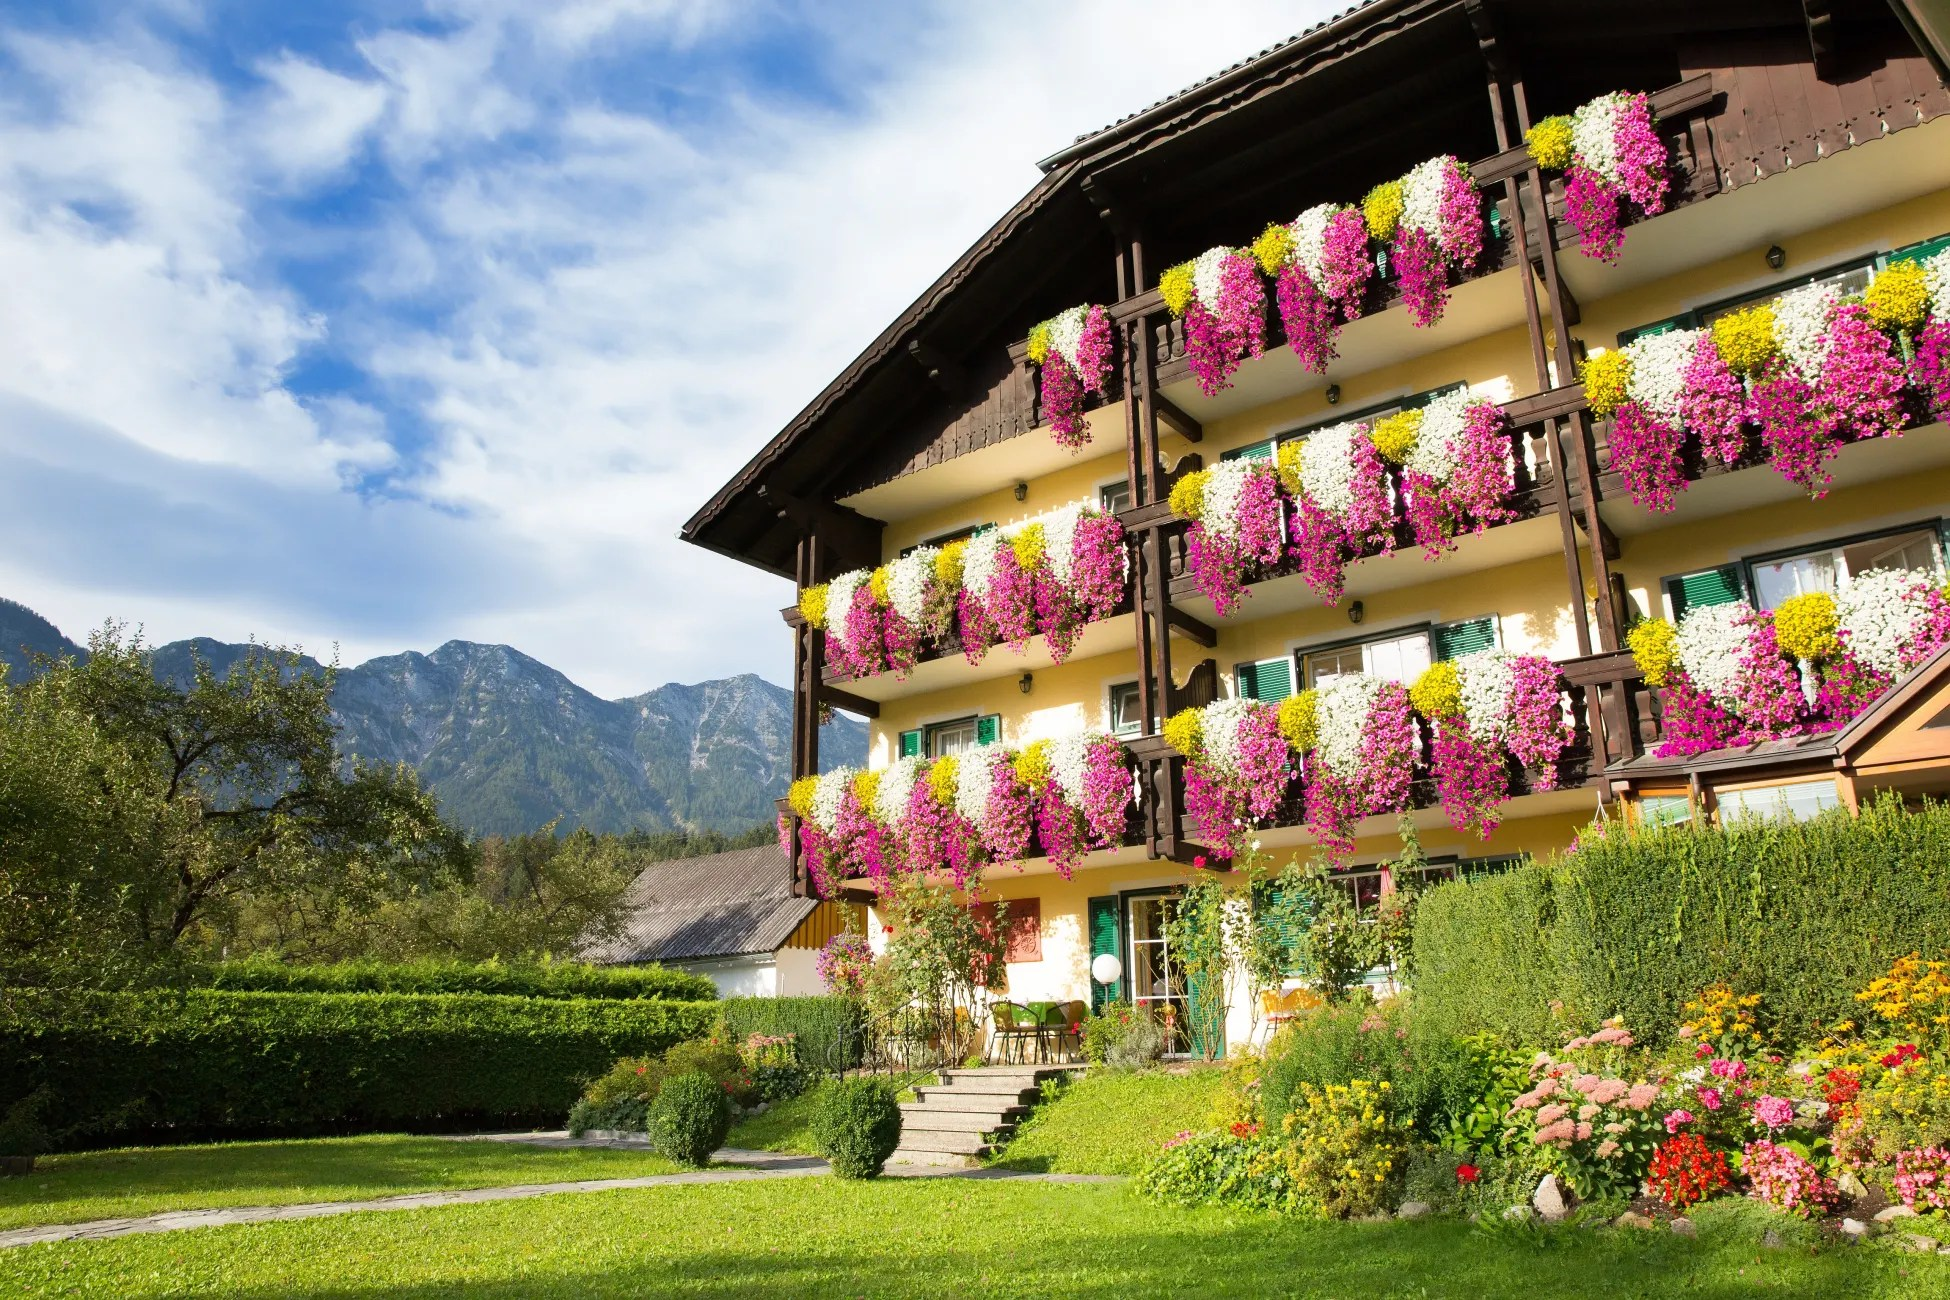 Wolfgang Weiss Bad Ischl Bed Breakfast Pension Maria Theresia Bad Goisern Ar